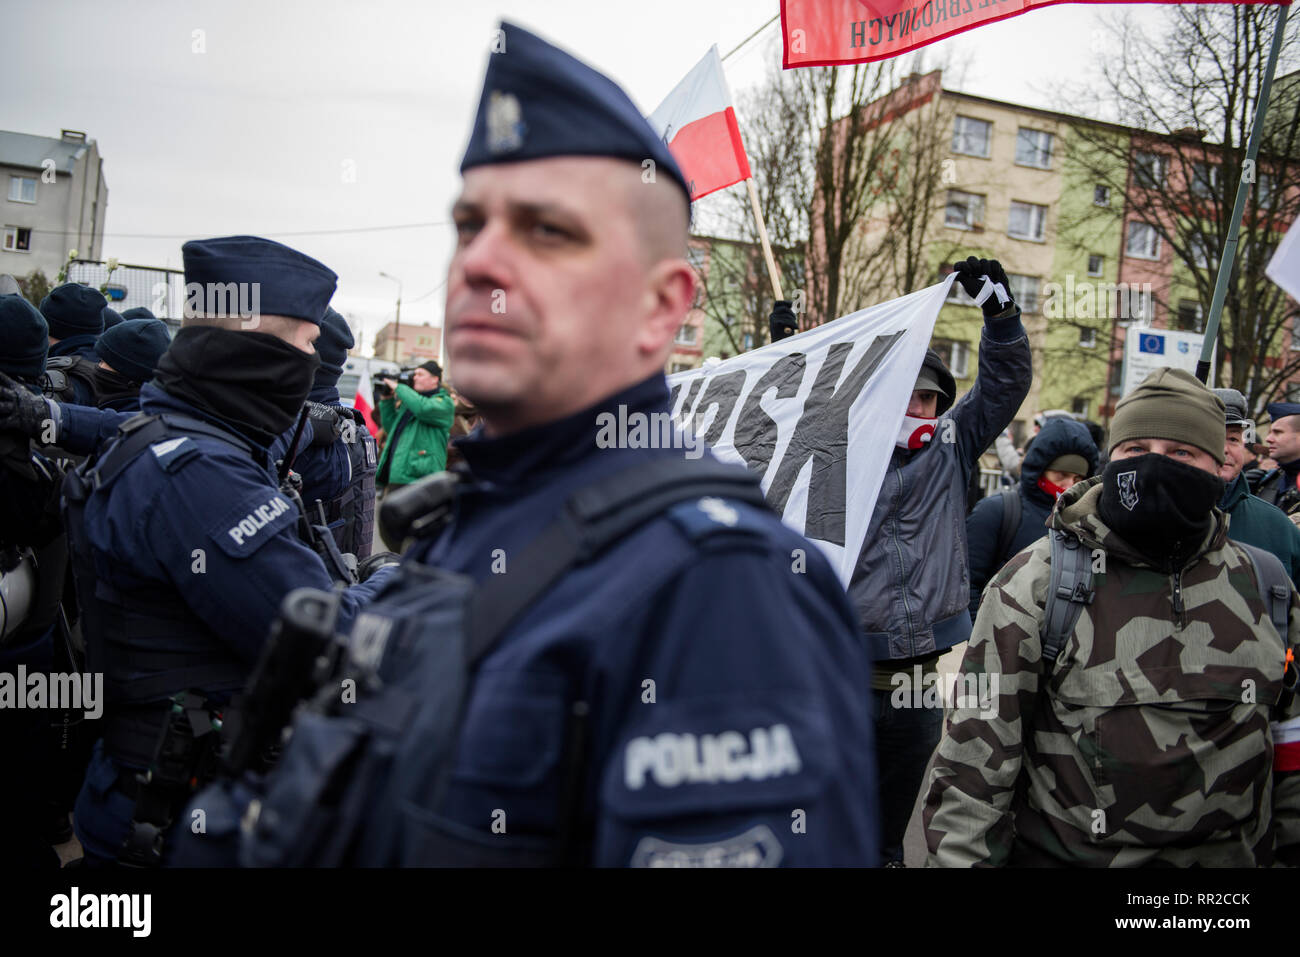 """Police forces seen providing protection during the march. Polish nationalists organized a commemorative march of the """"Cursed Soldiers"""" in the city of Hajnowka next to the Belarusian border. The Cursed Soldiers also known as the Doomed Soldiers were anti-communist resistant fighters after WWII, however they were also famous of committing crimes against civilians, mostly ethnic Belarusians. - Stock Image"""